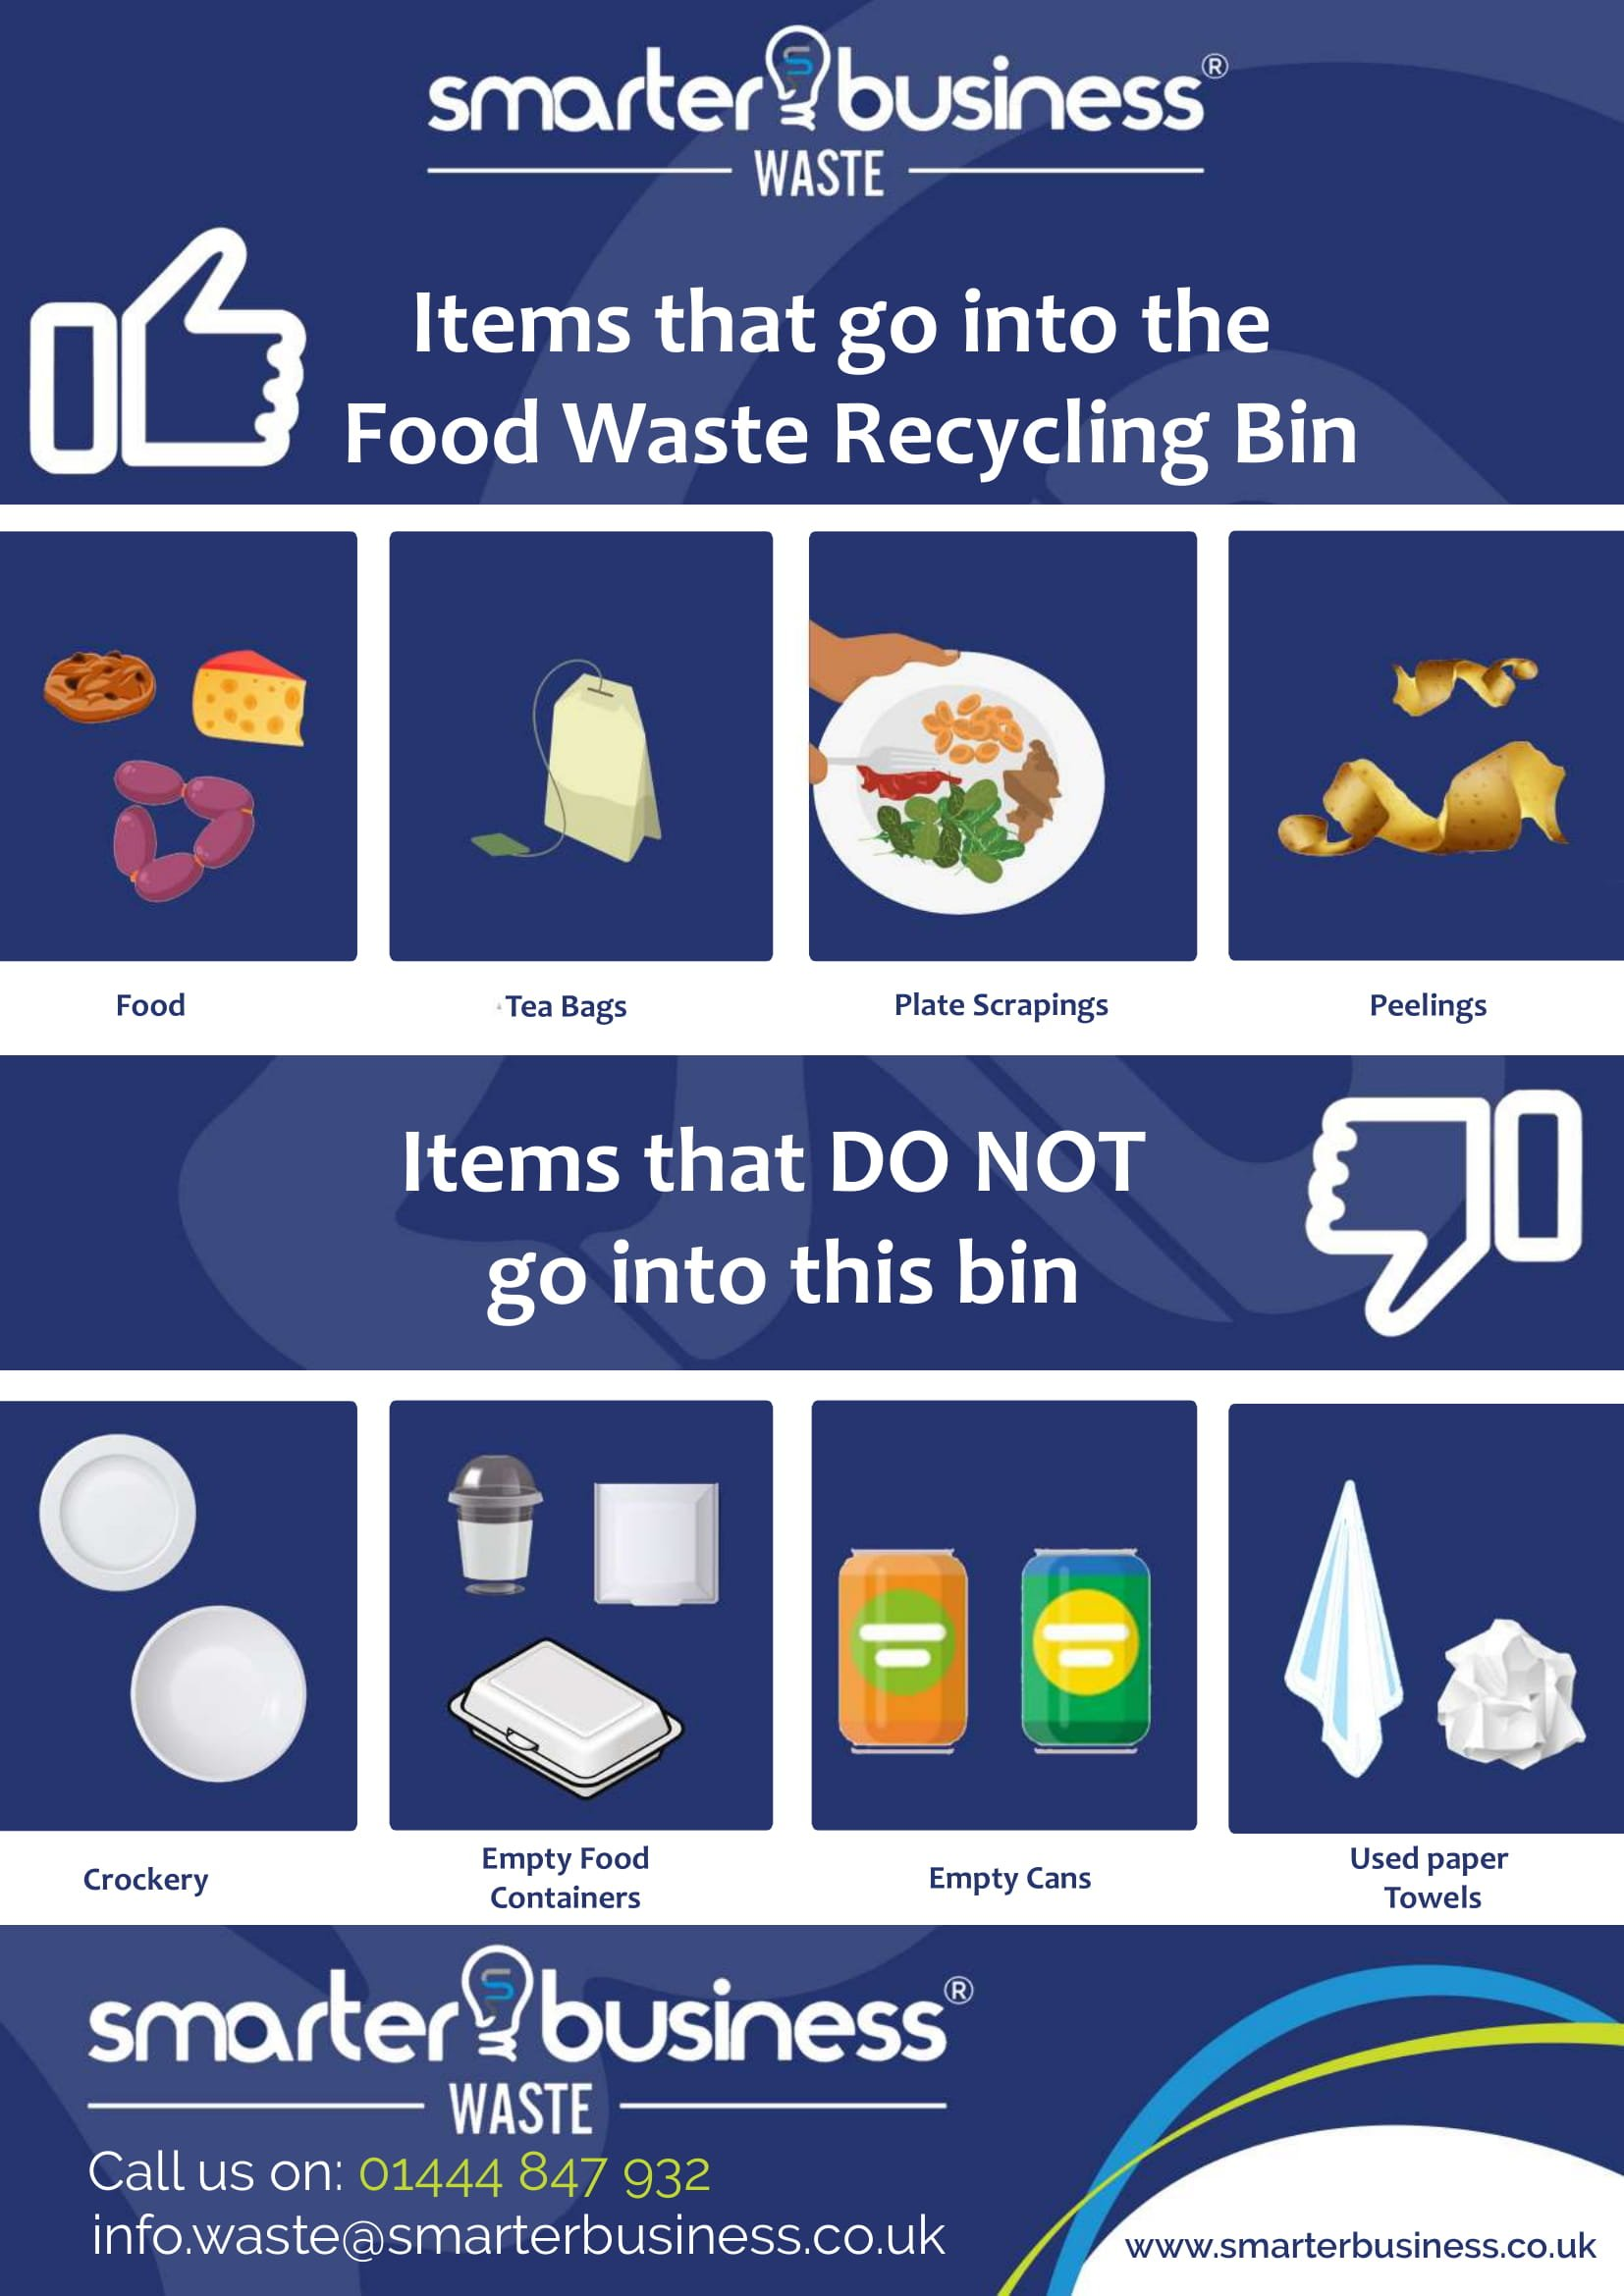 what can go into the food waste recycling bin